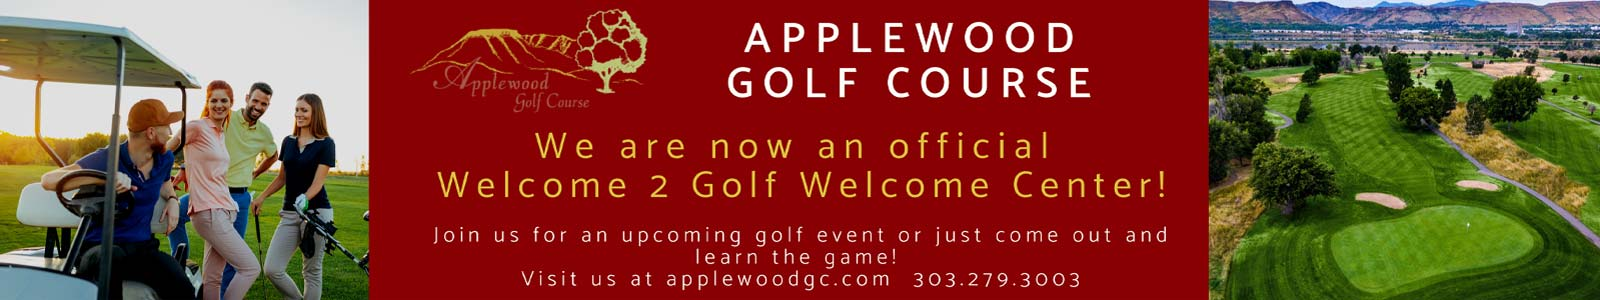 Applewood Golf Course - Golden, CO